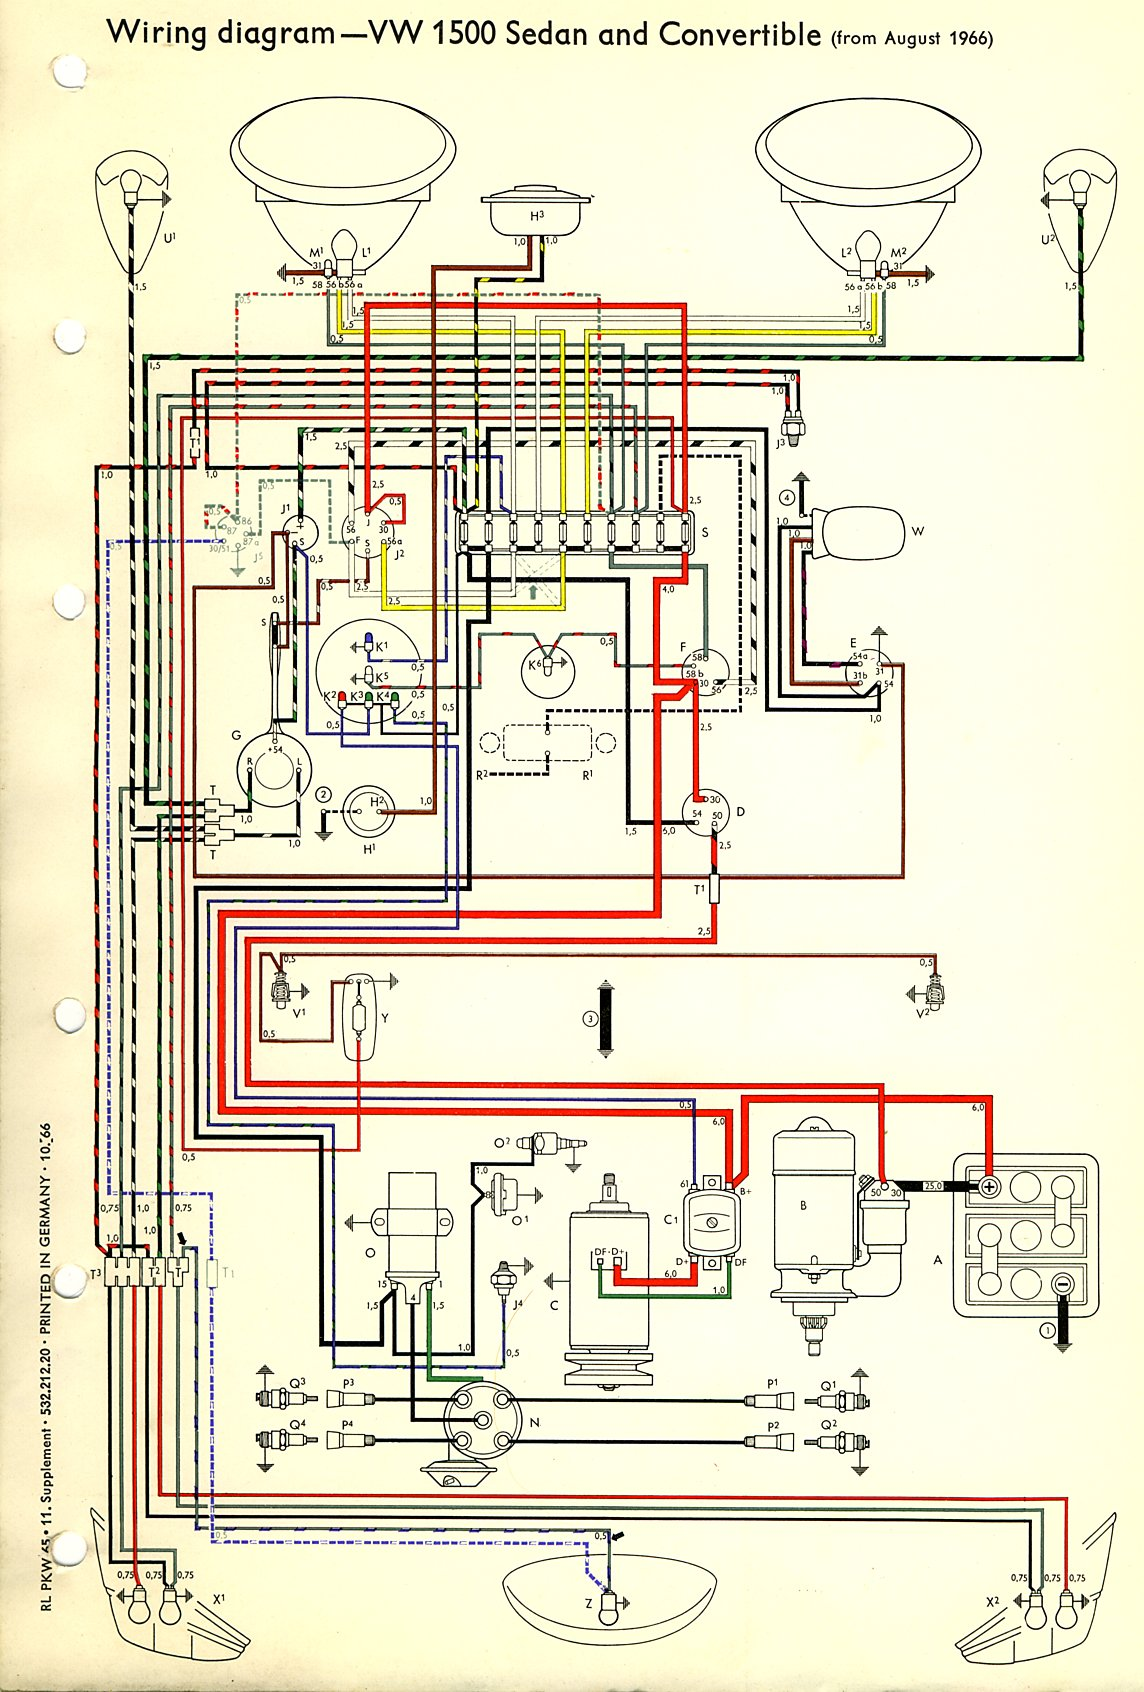 1960 Vw Bug Wiring Great Design Of Diagram Elite Popcorn Machine Diagrams 1967 Beetle Thegoldenbug Com 1965